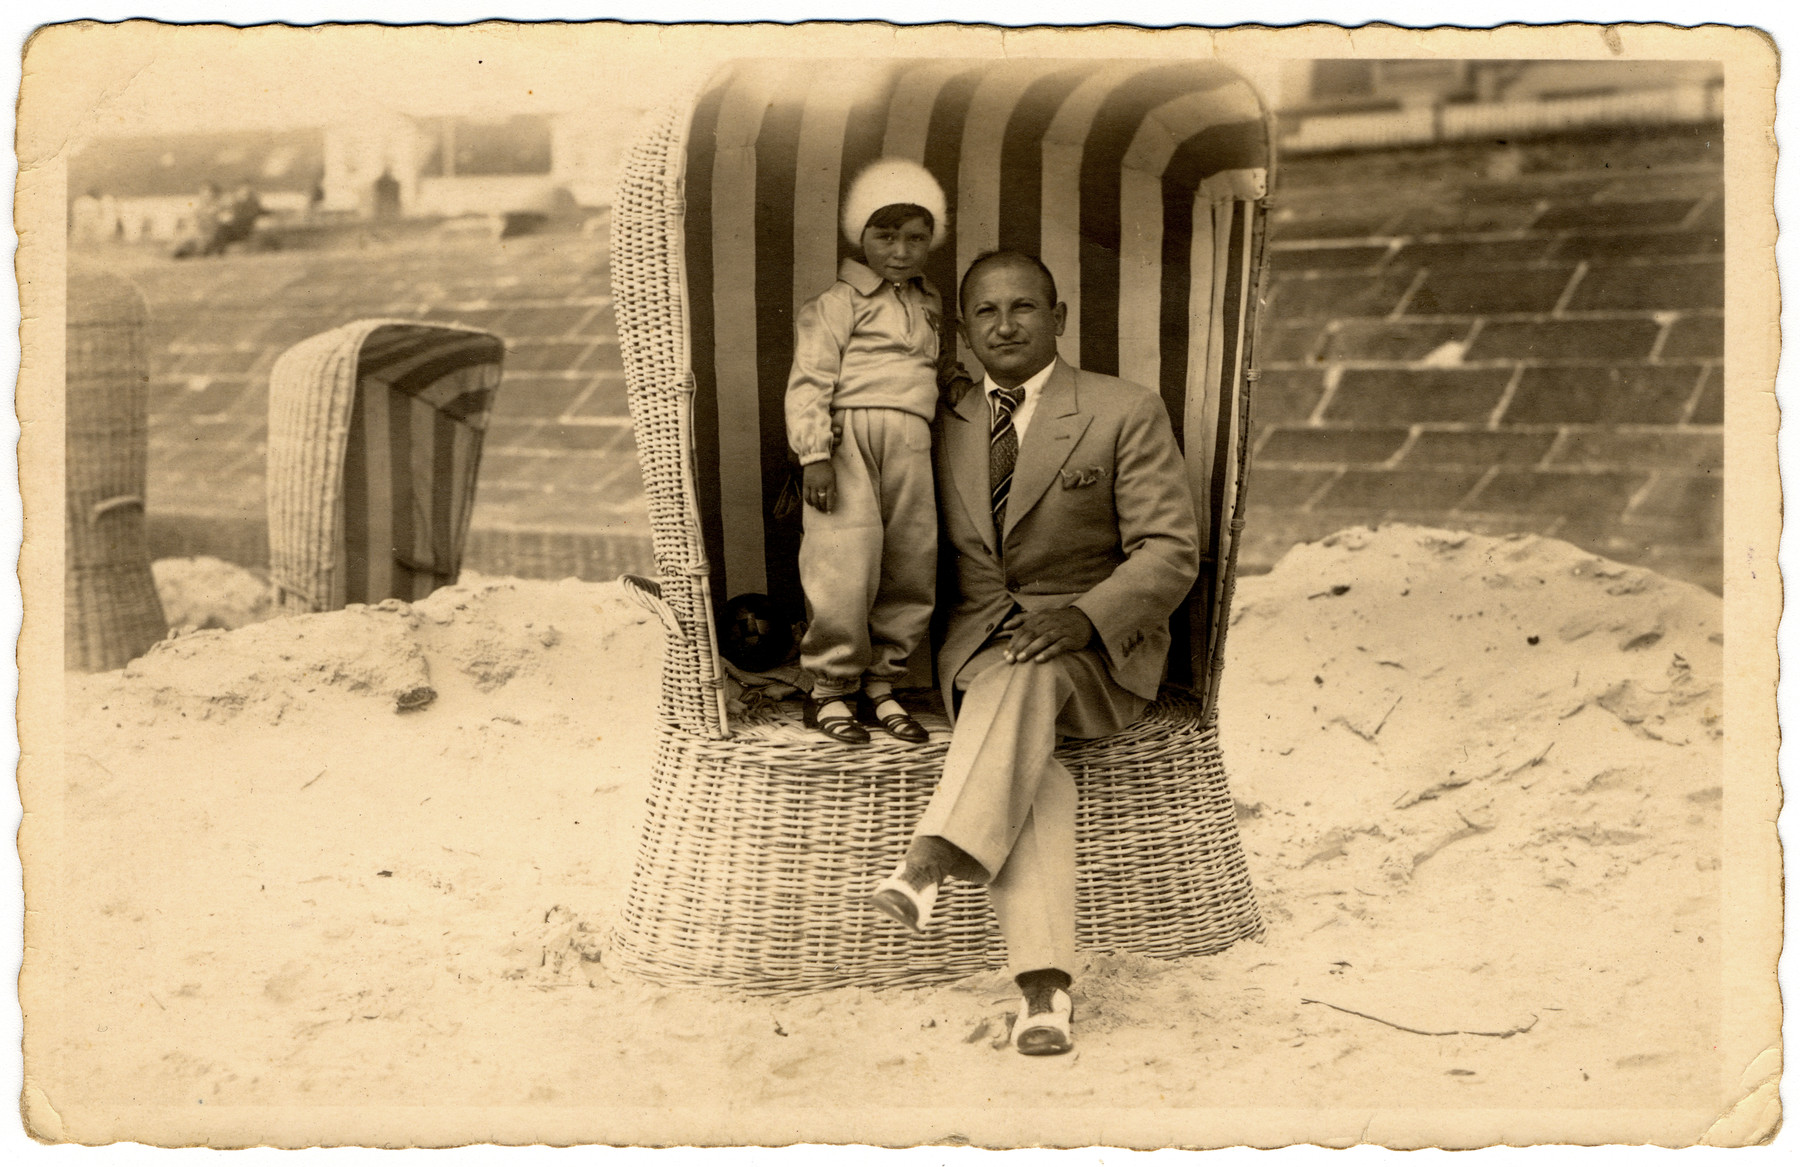 Sonia Pressman and her father, Zysia, in a beach cabana in Germany in the early 1930s.